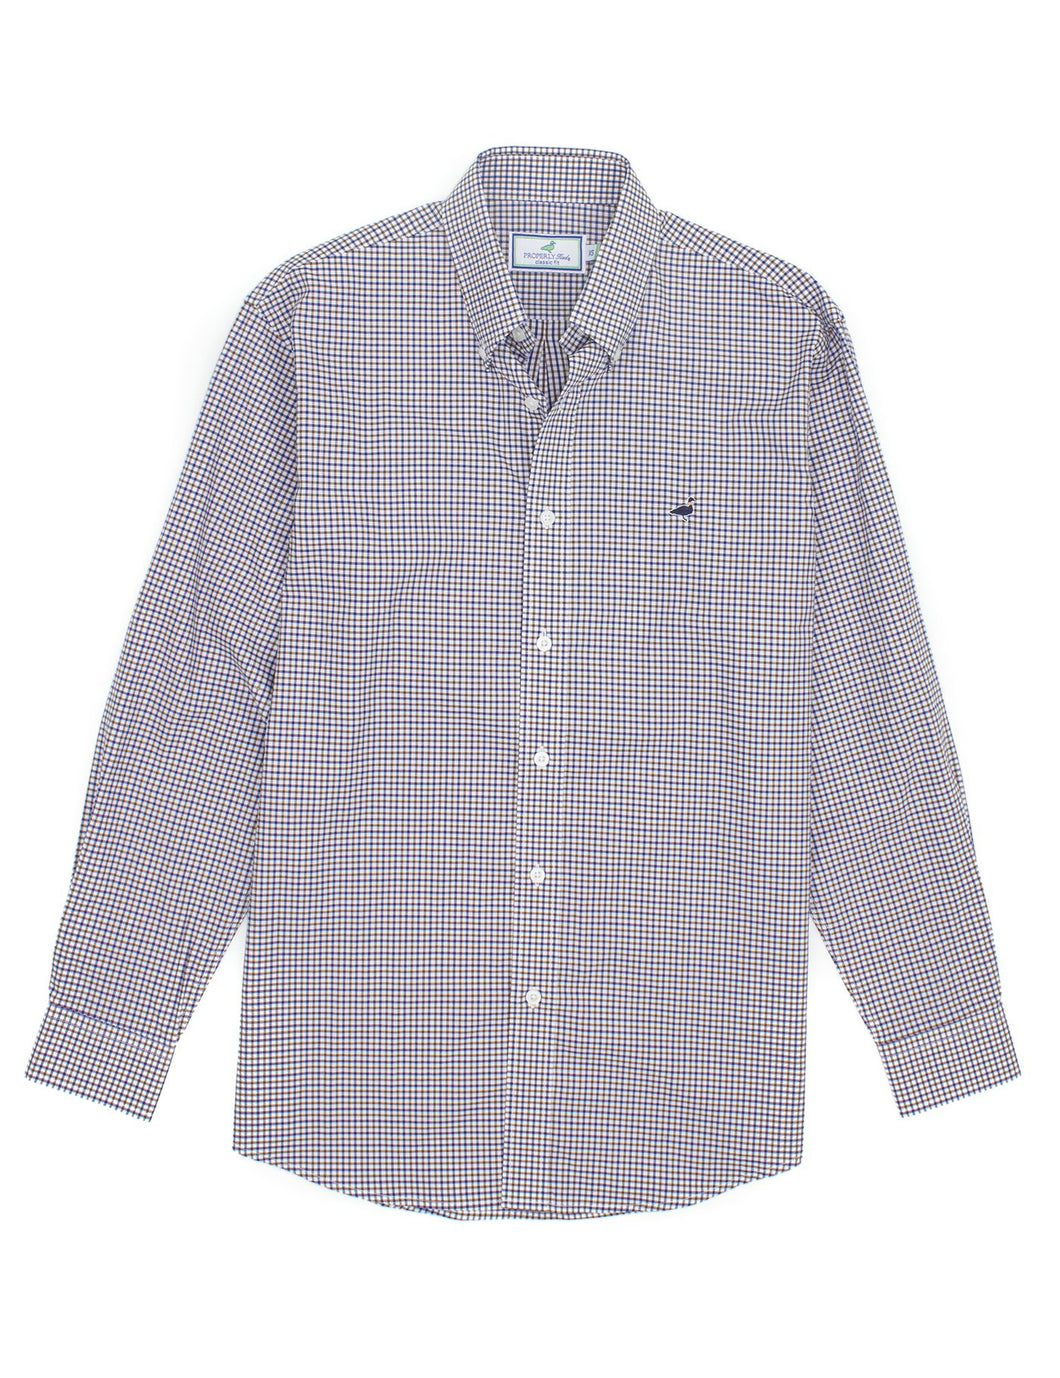 Creek Seasonal Sportshirt